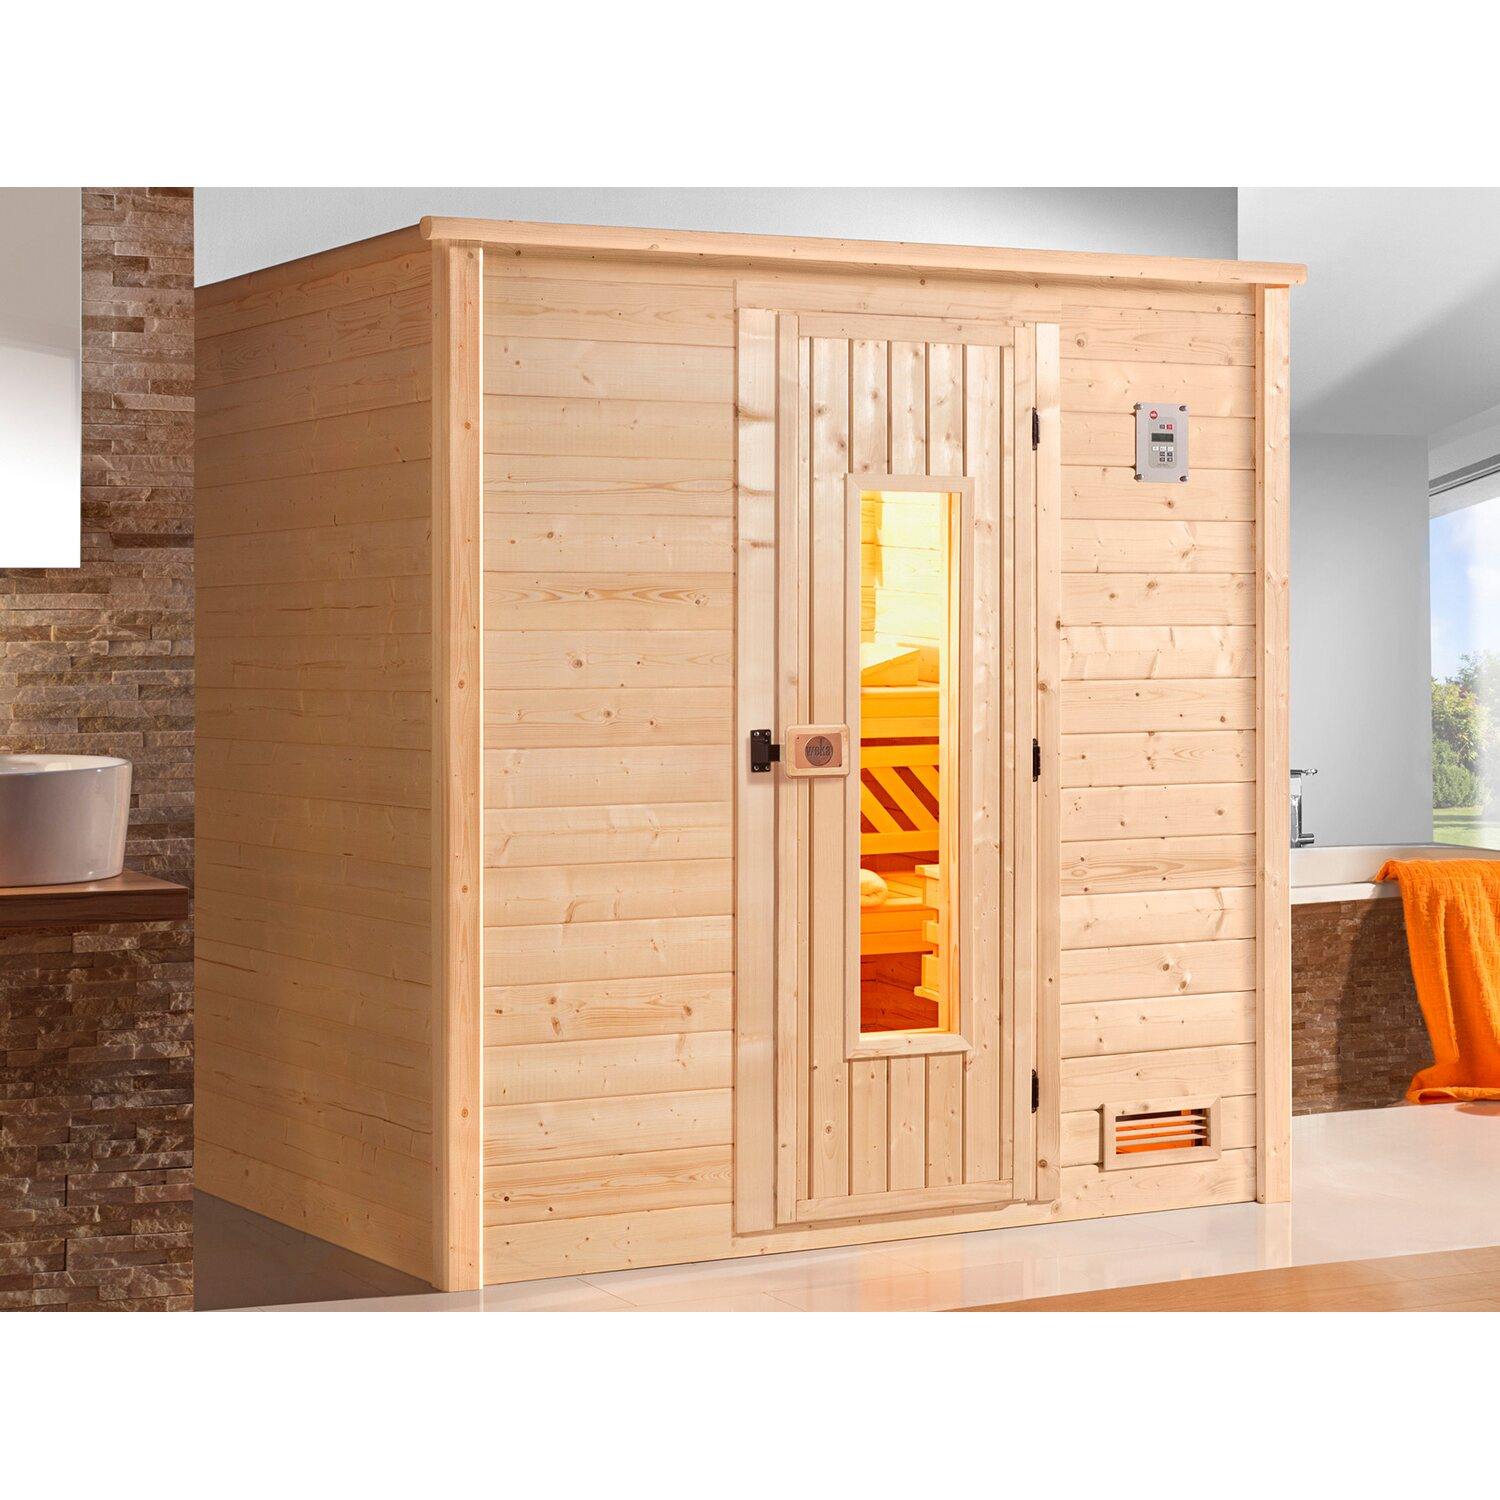 weka massivholz sauna 530 gr 2 mit holzt r ohne ofen kaufen bei obi. Black Bedroom Furniture Sets. Home Design Ideas